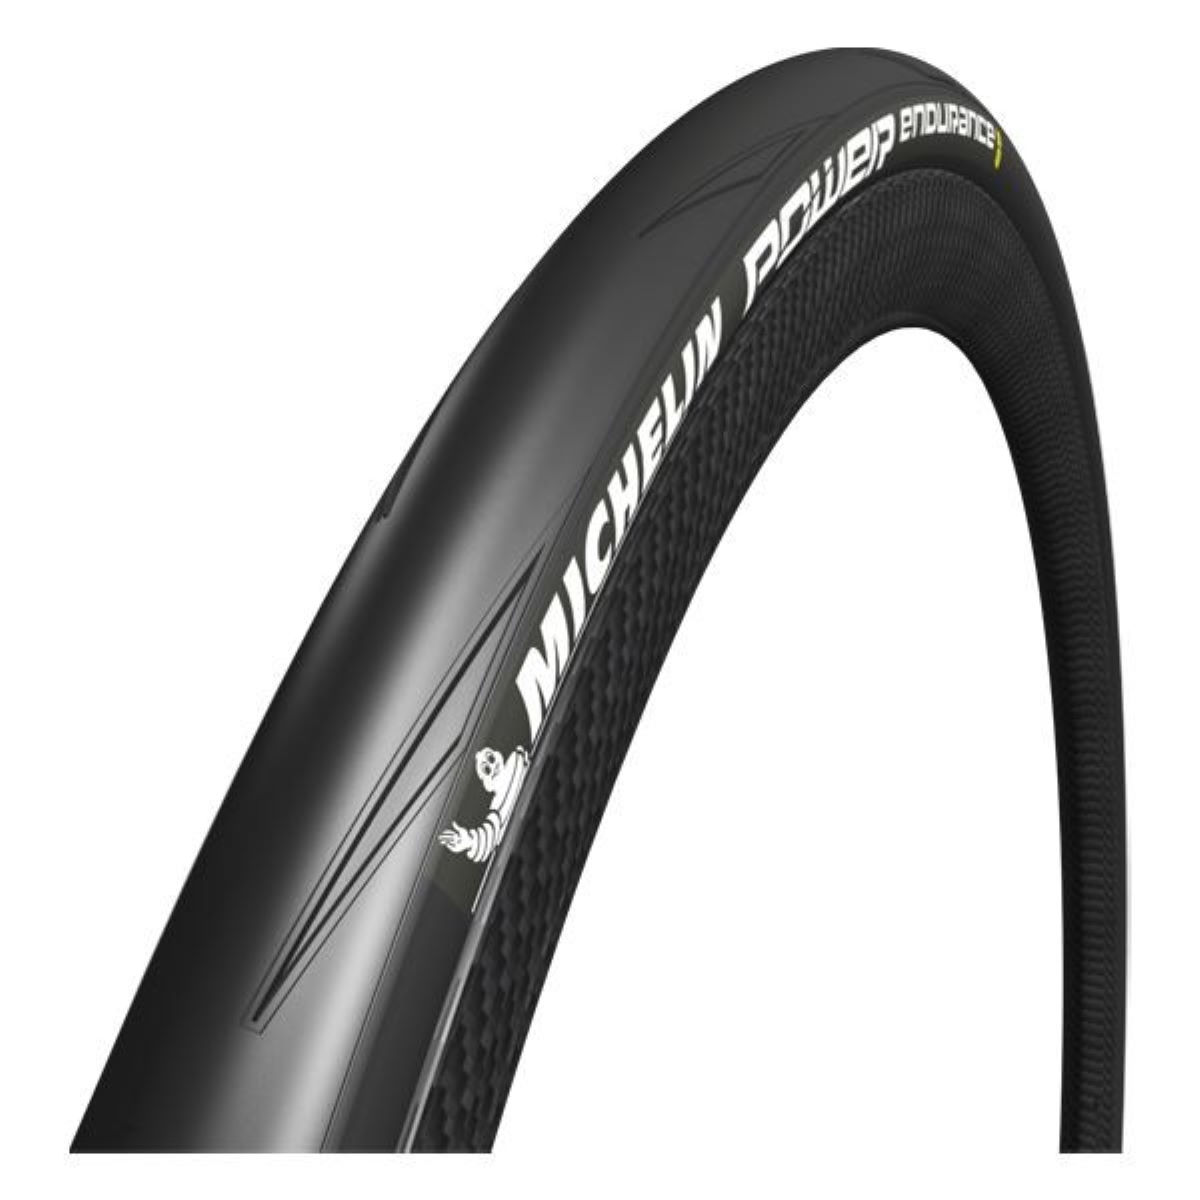 Pneu souple de route Michelin Power Endurance (700 x 23 c) - Noir